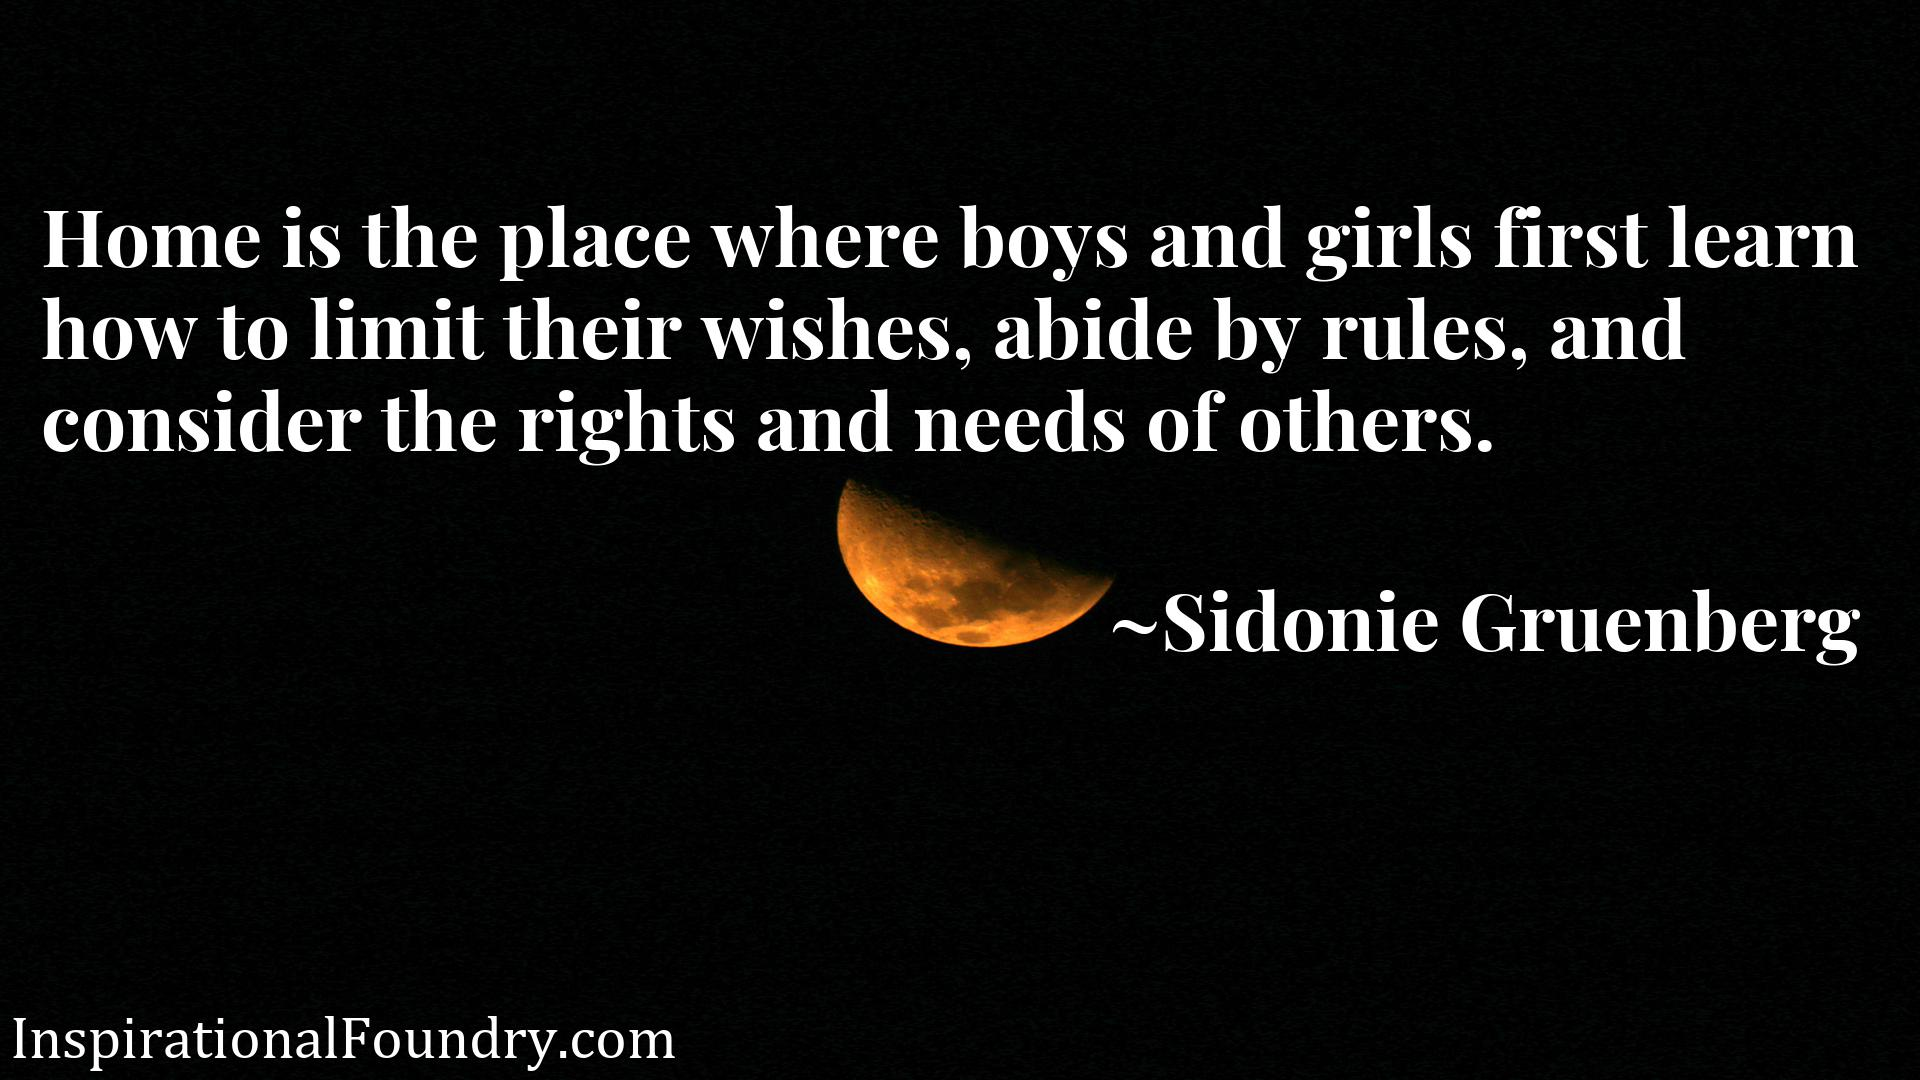 Home is the place where boys and girls first learn how to limit their wishes, abide by rules, and consider the rights and needs of others.